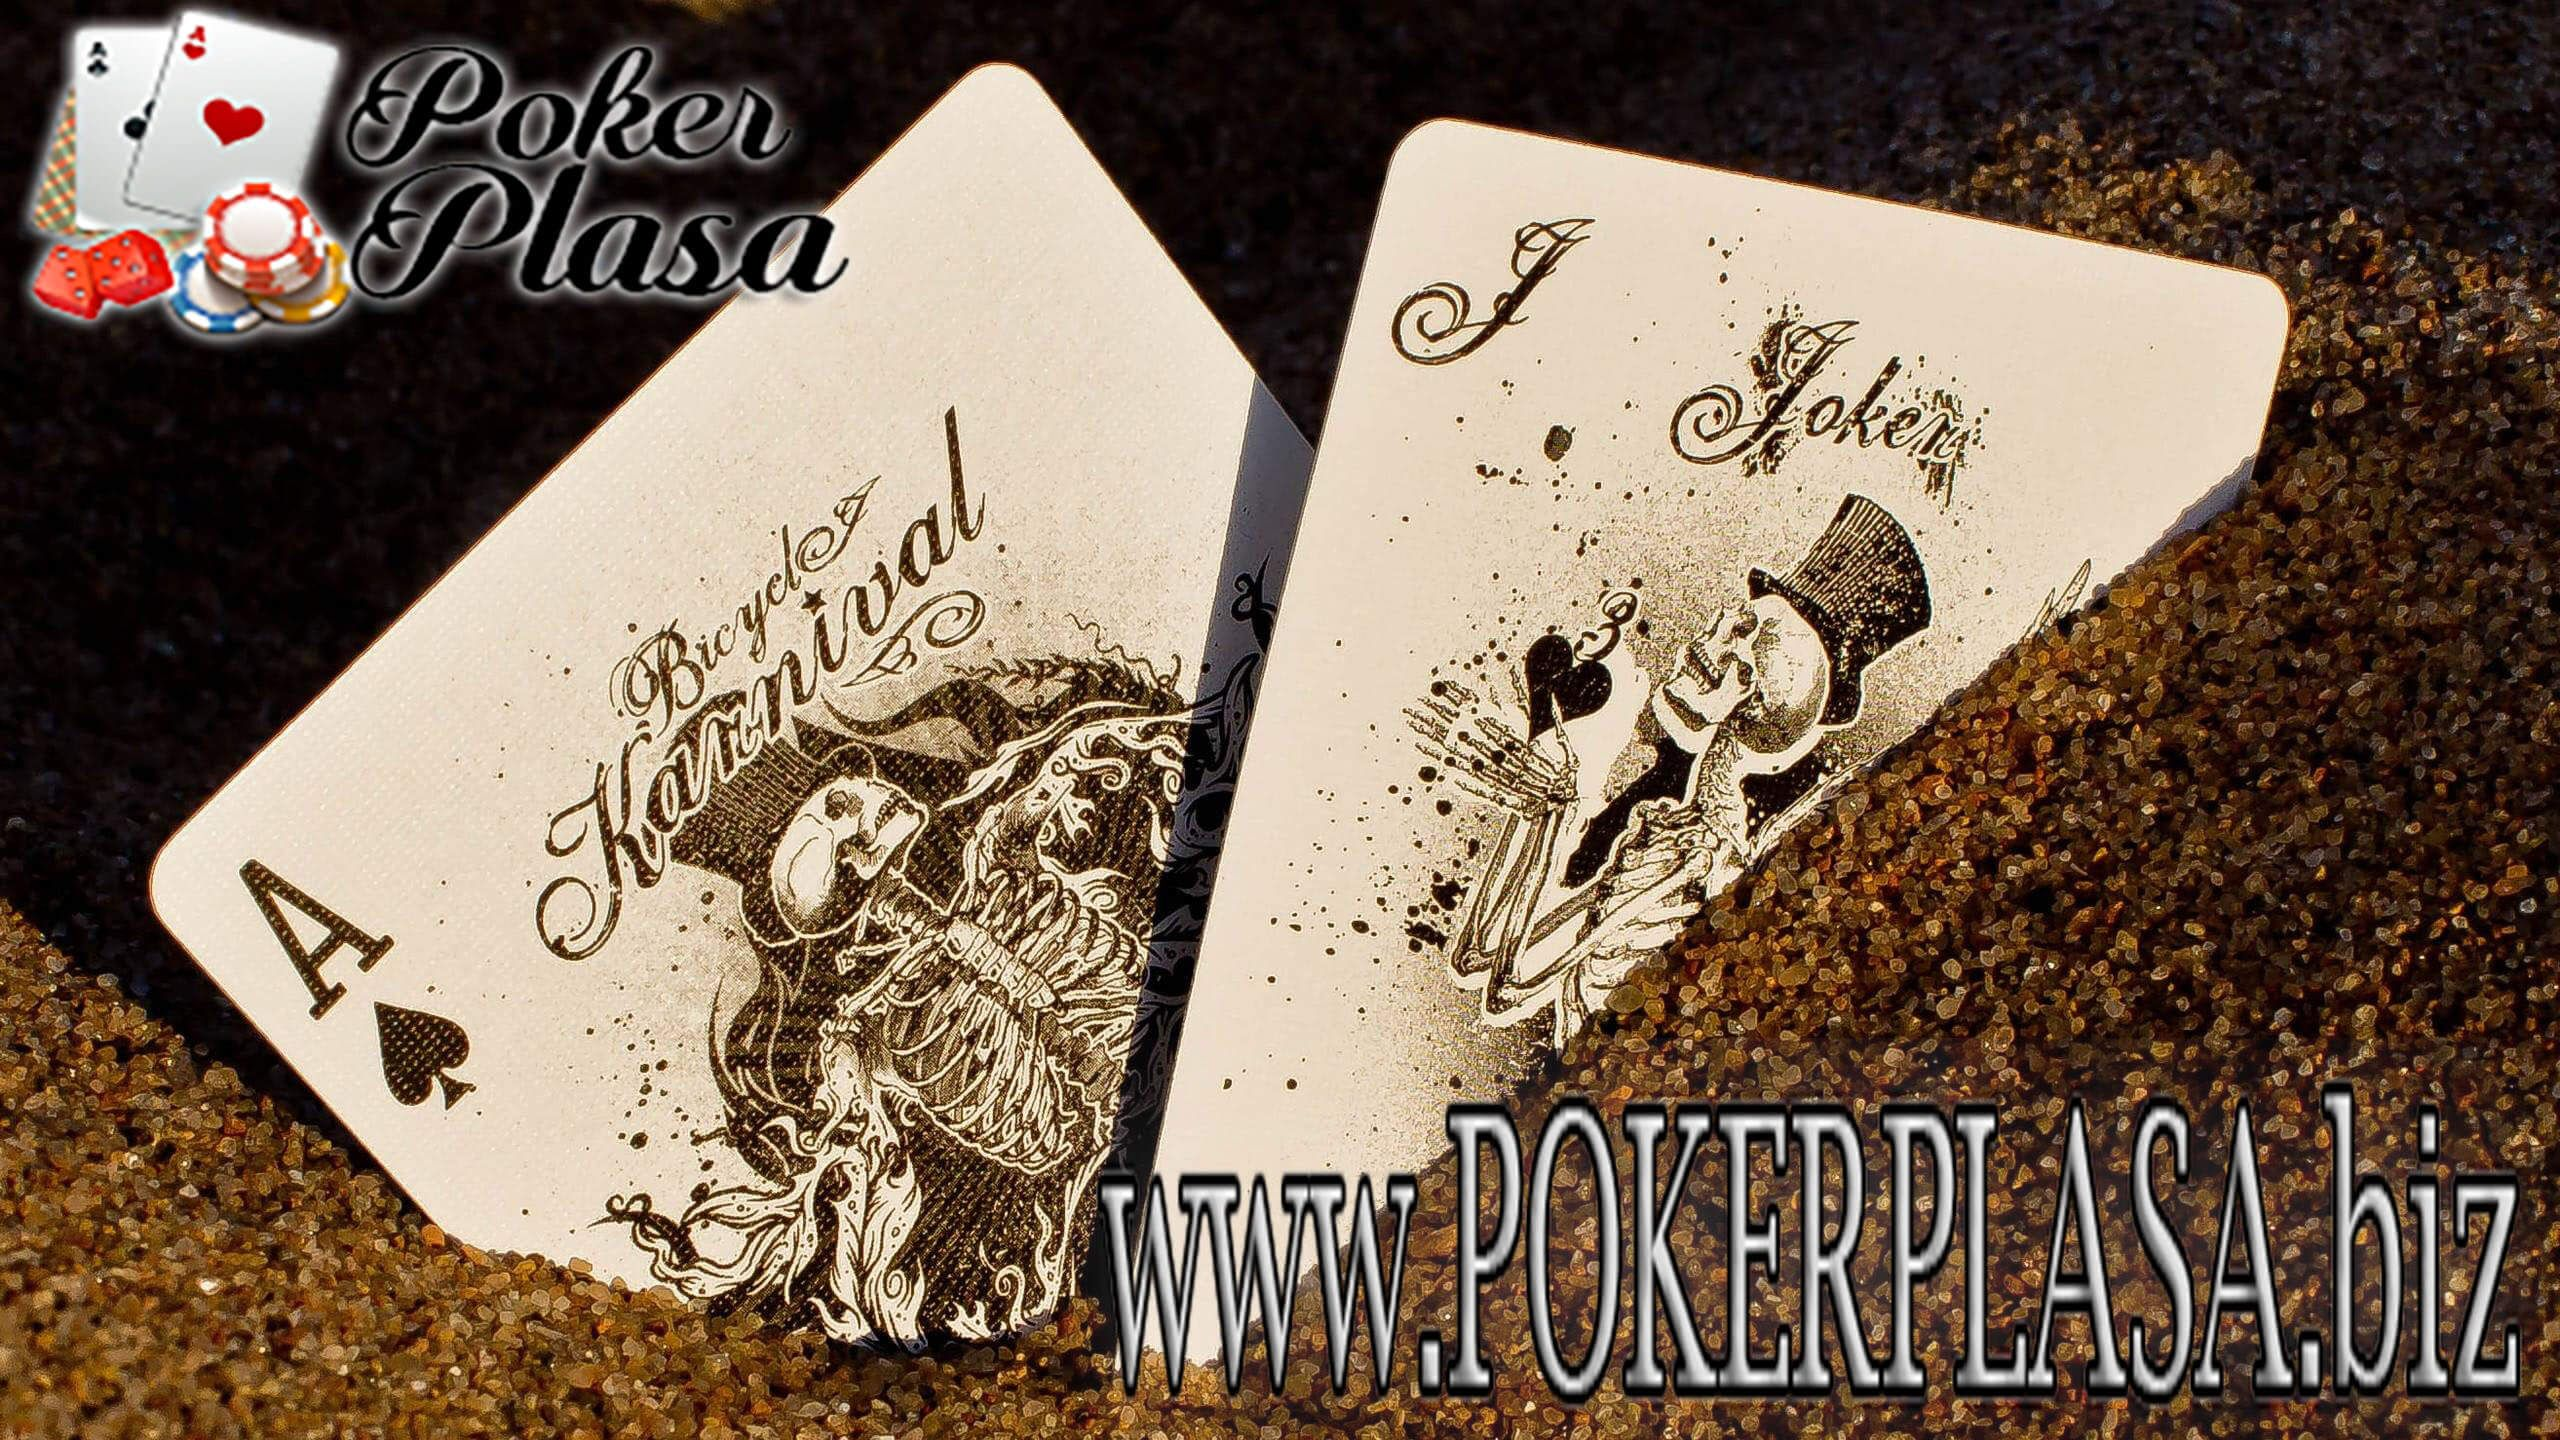 PERMAINAN POKER ONLINE INDONESIA Playing cards, Cards